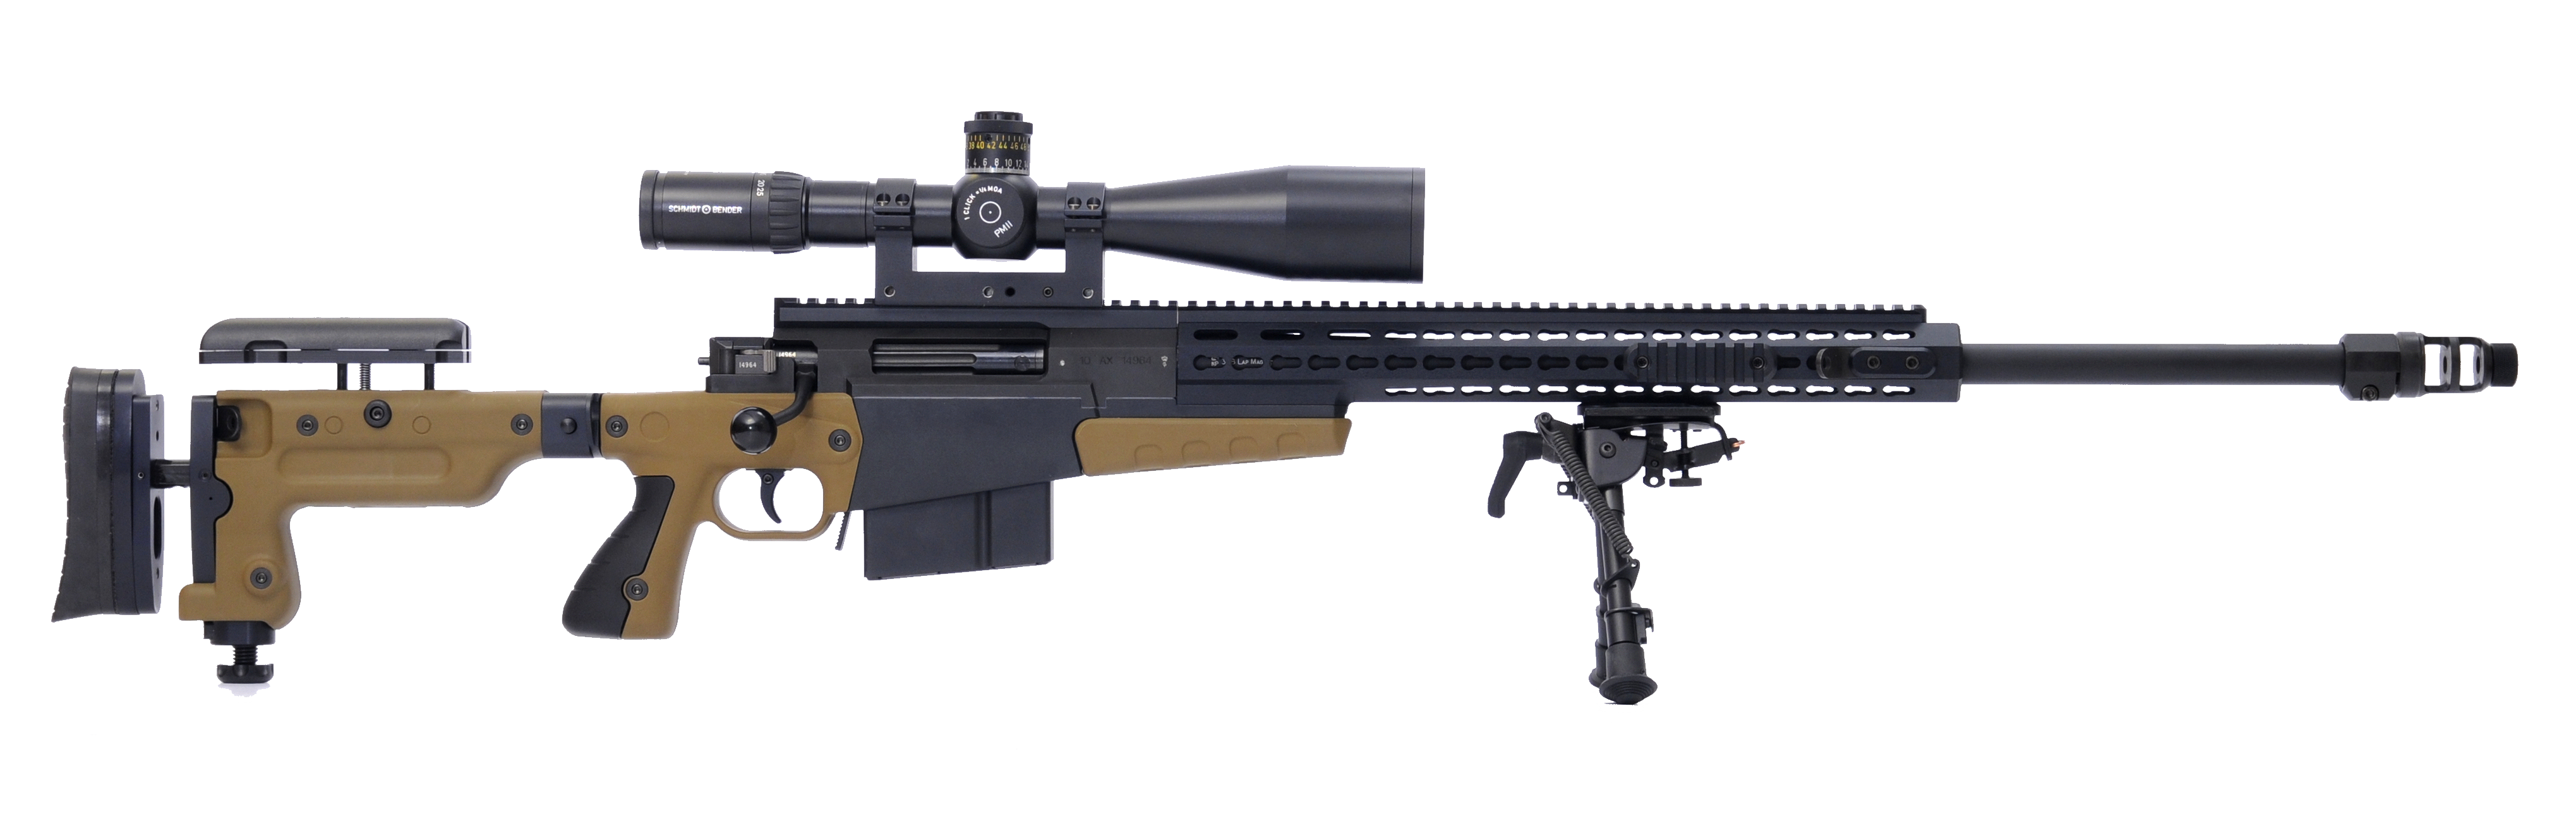 Rifle png. Sniper images free download